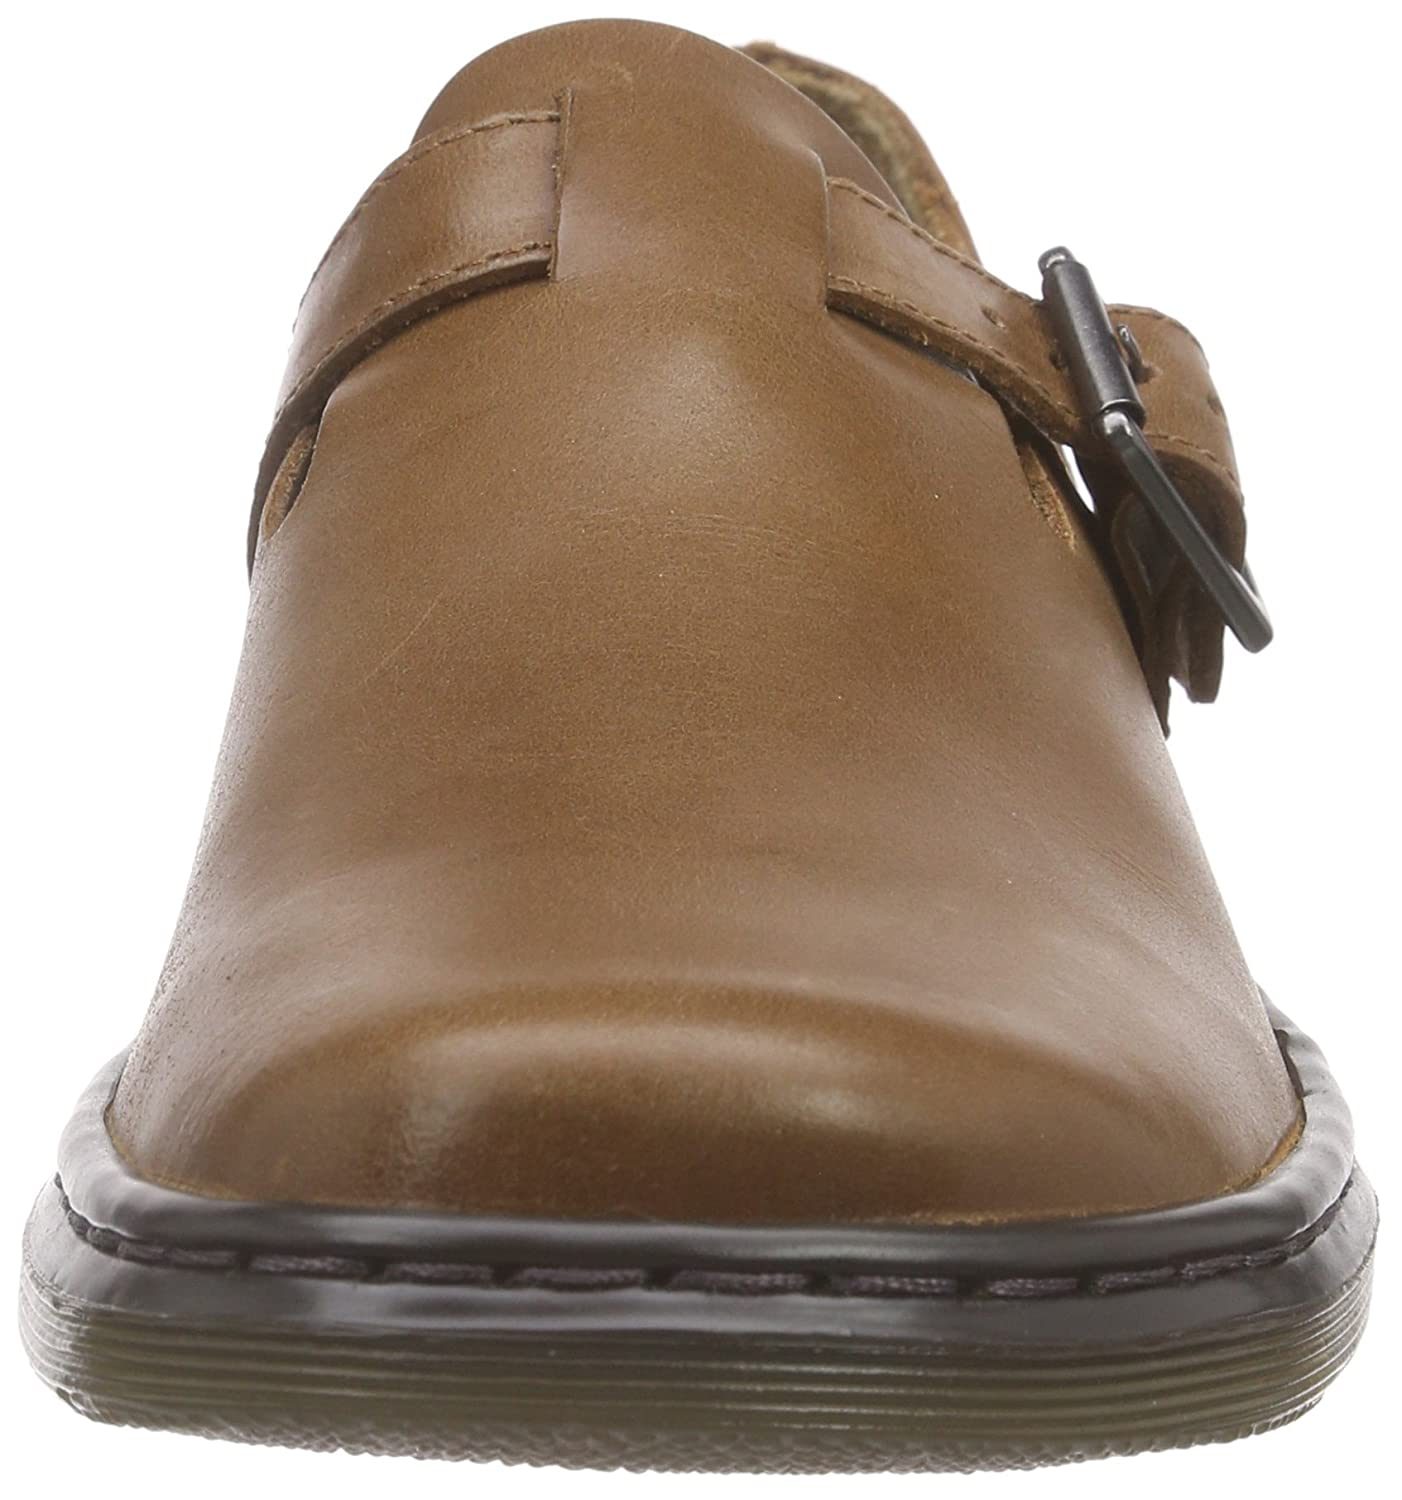 Dr. Martens Patricia Oily Illusion Tan, Mocasines para Mujer, Marrón-Braun, 36 EU: Amazon.es: Zapatos y complementos